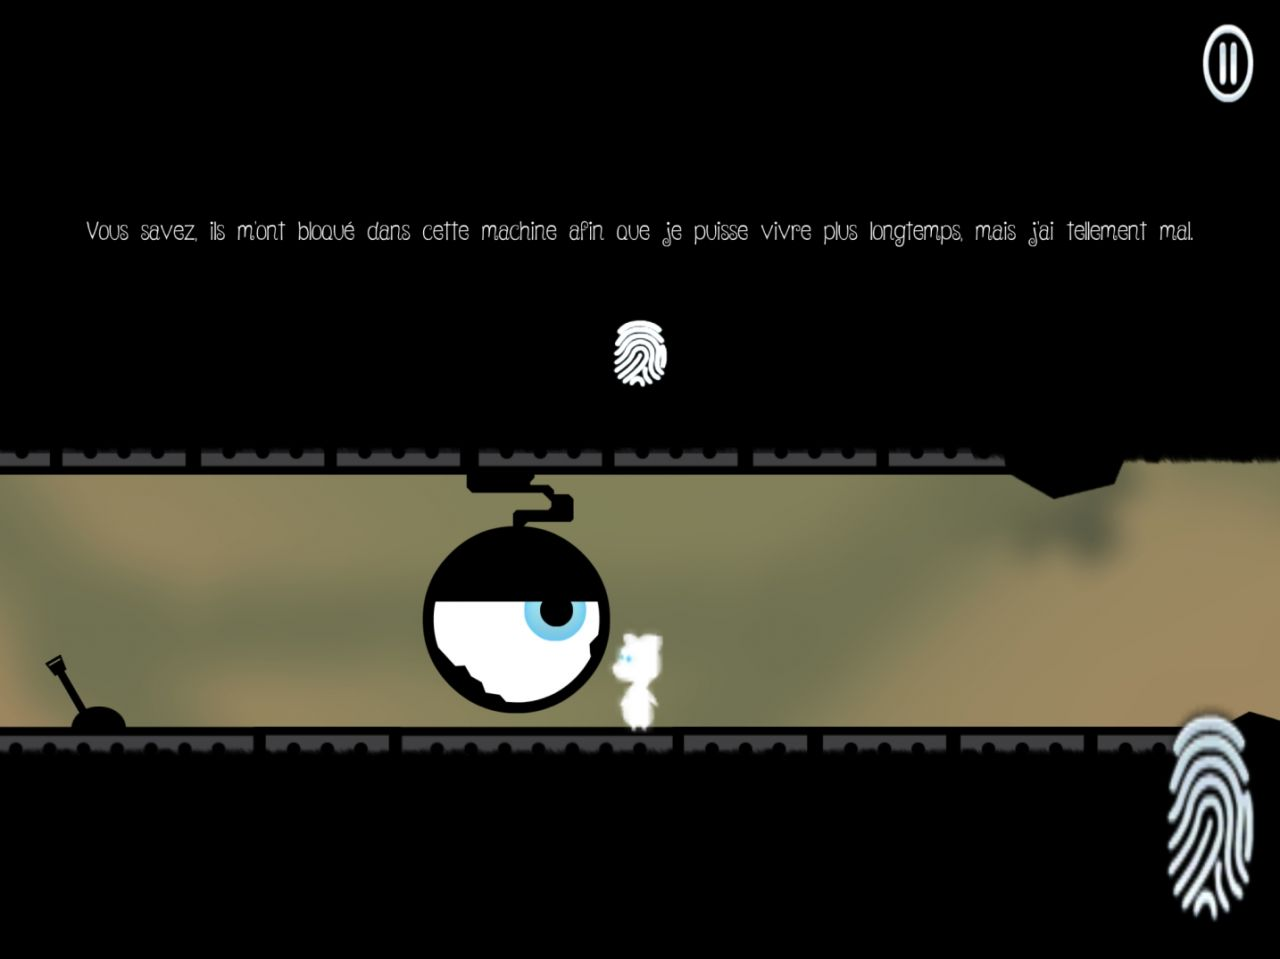 Soulless - Ray of Hope (copie d'écran 1 sur iPhone / iPad)